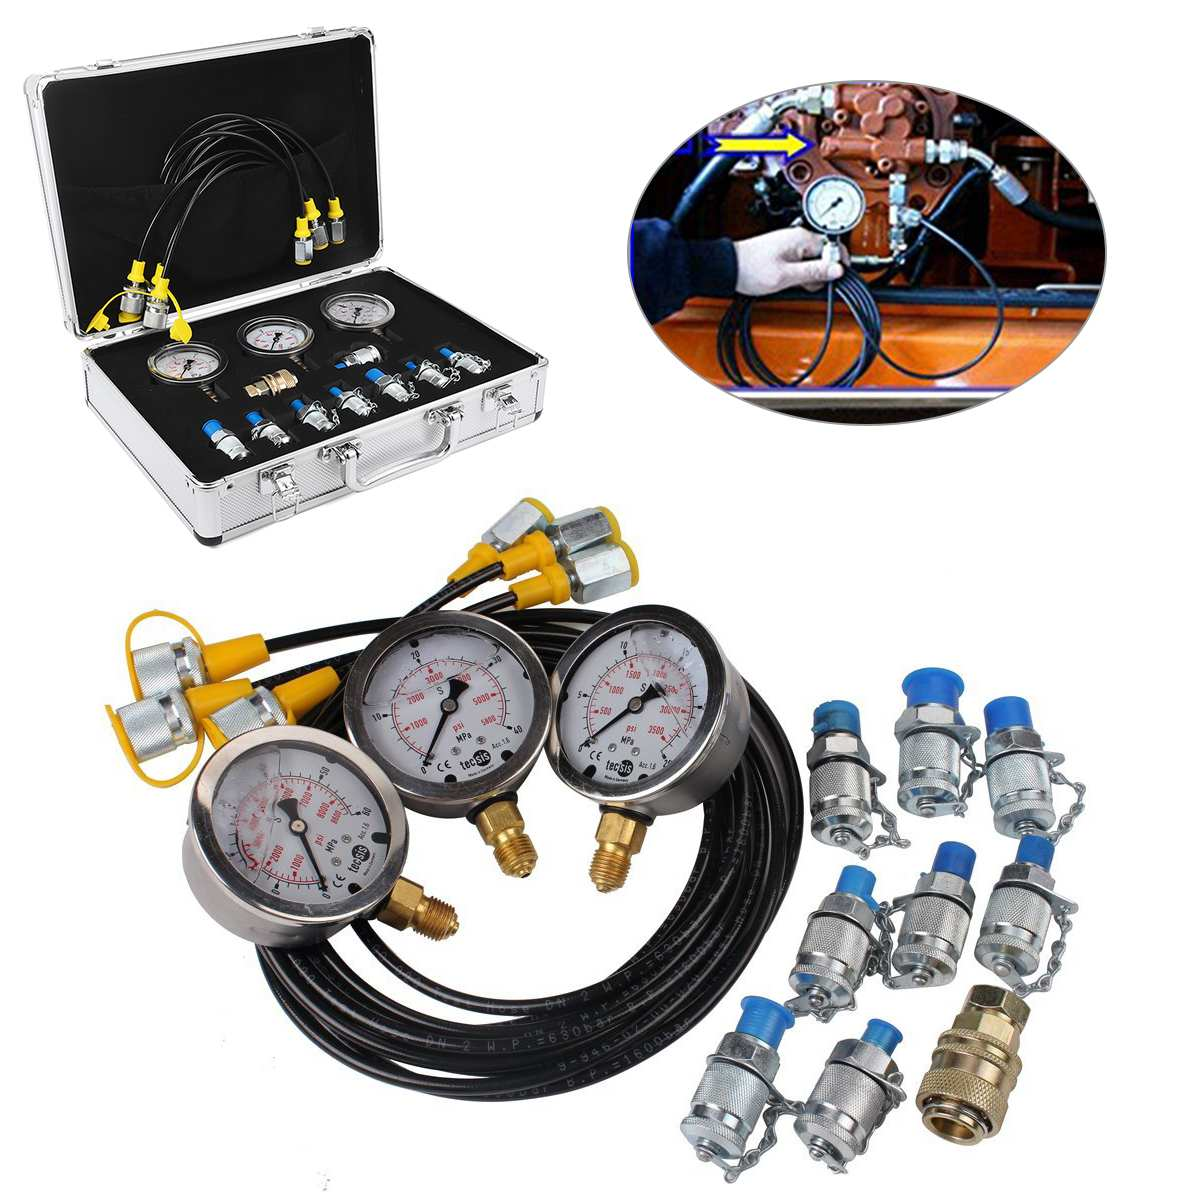 1 Set Excavator Hydraulic Pressure Gauge Test Kit Professional Hydraulic Measuring Toolbox For Hydraulic Presses Machinery